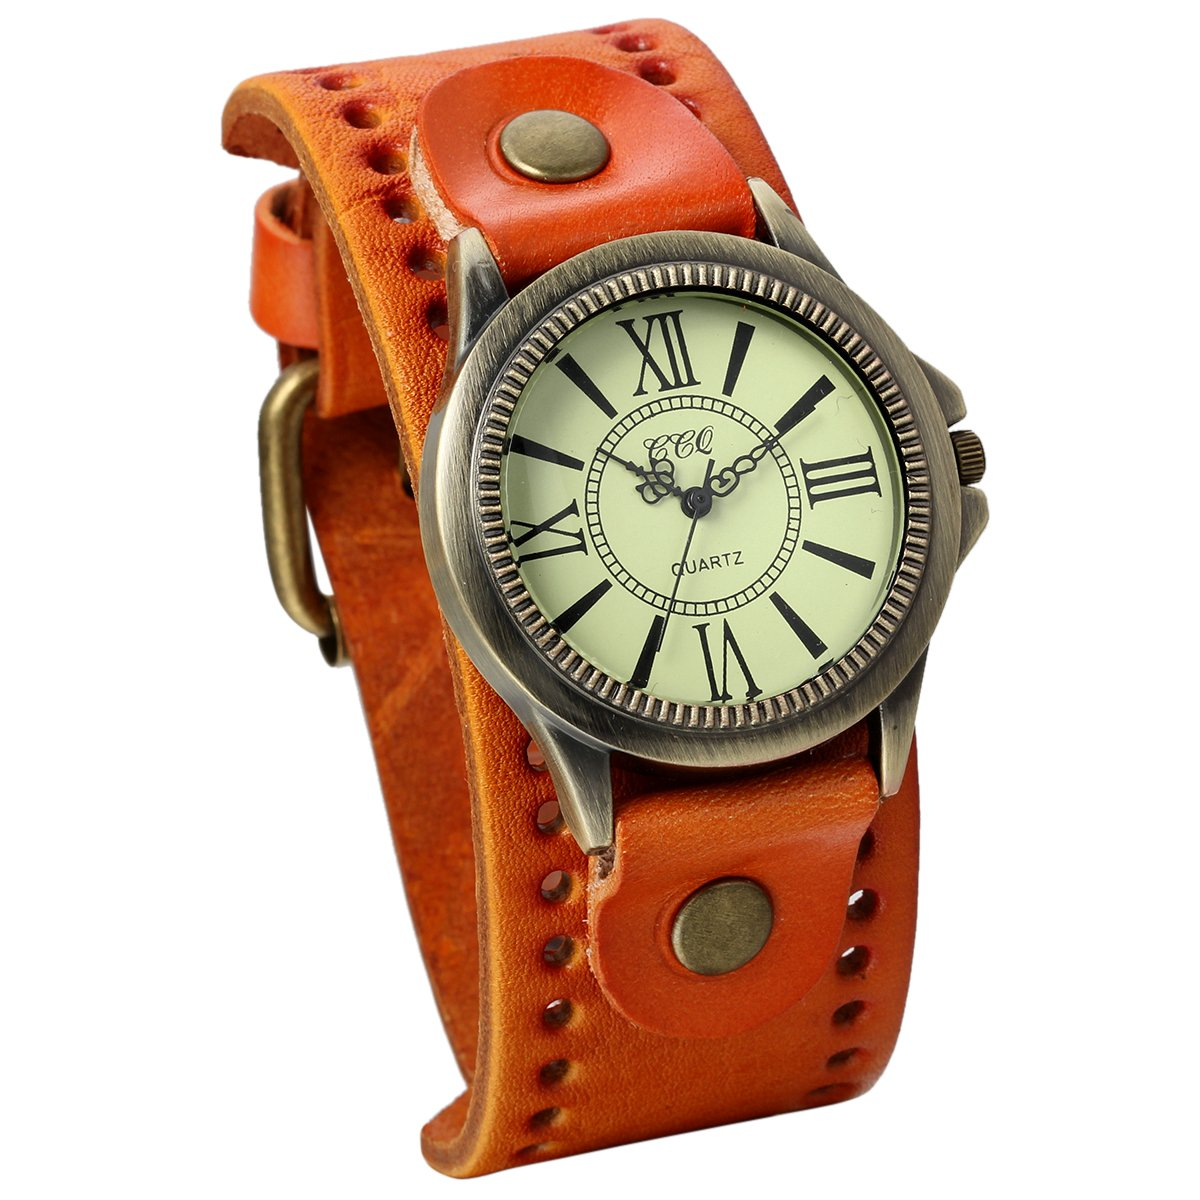 Amazon.com: JewelryWe Vintage Leather Strap Wide Band Wristwatch Cuff Quartz Watch for Men - Yellow: Watches